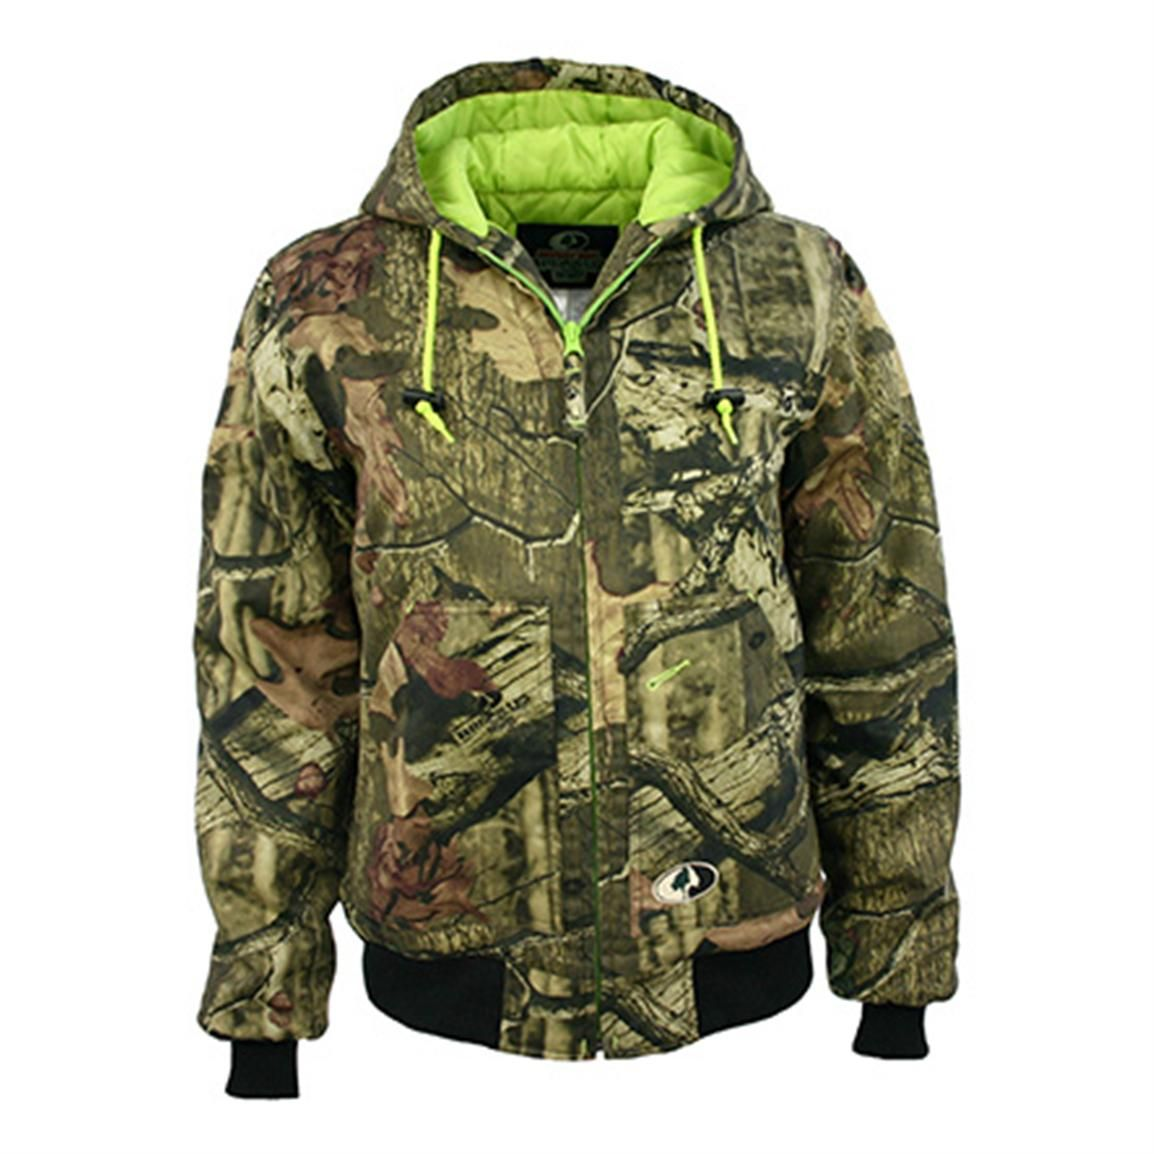 women s walls insulated hooded jacket a true fitting on walls hunting clothing insulated id=64883